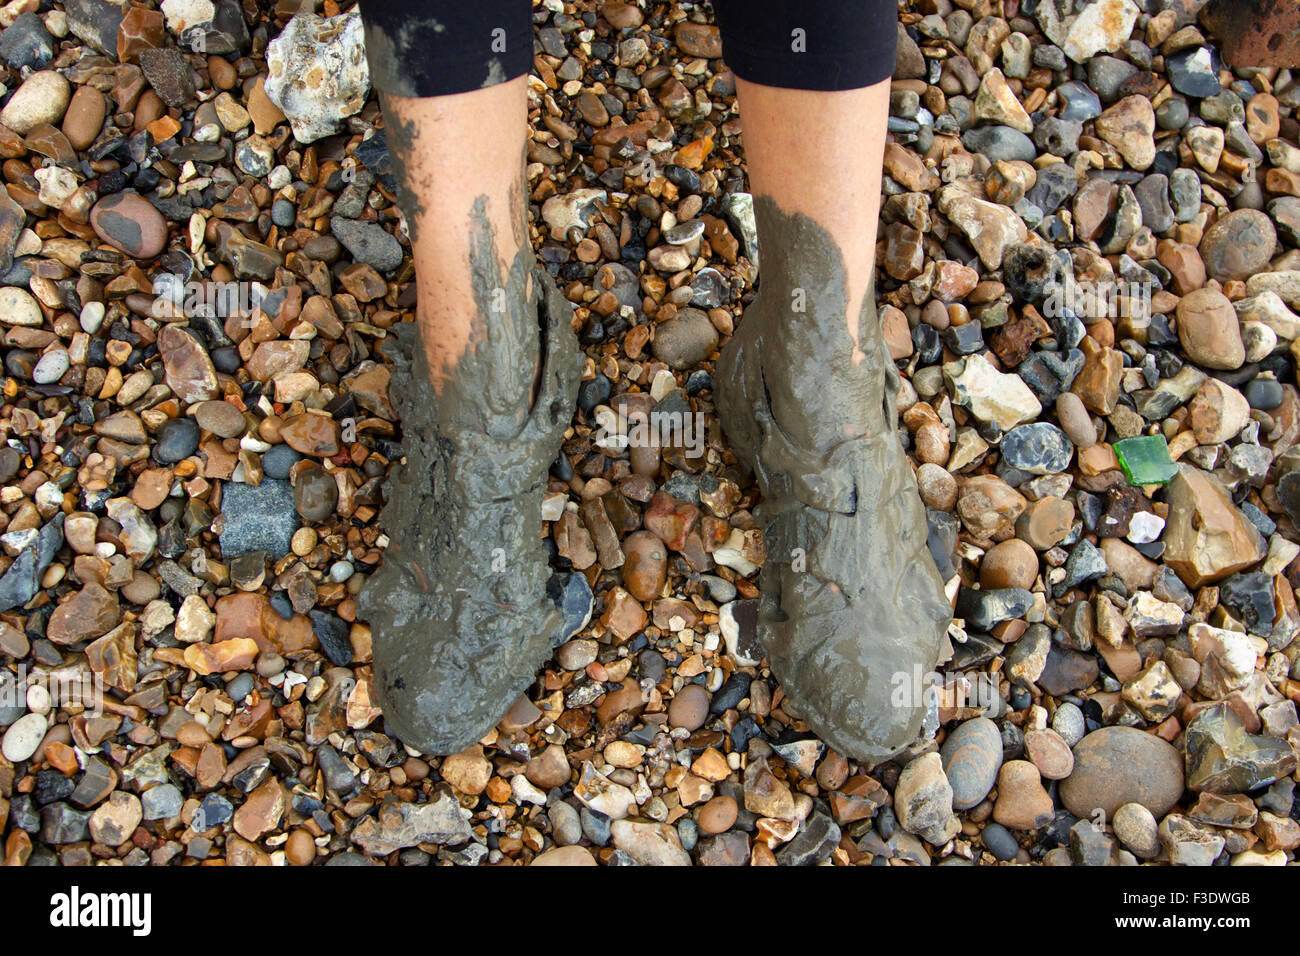 Woman with very muddy shoes. - Stock Image